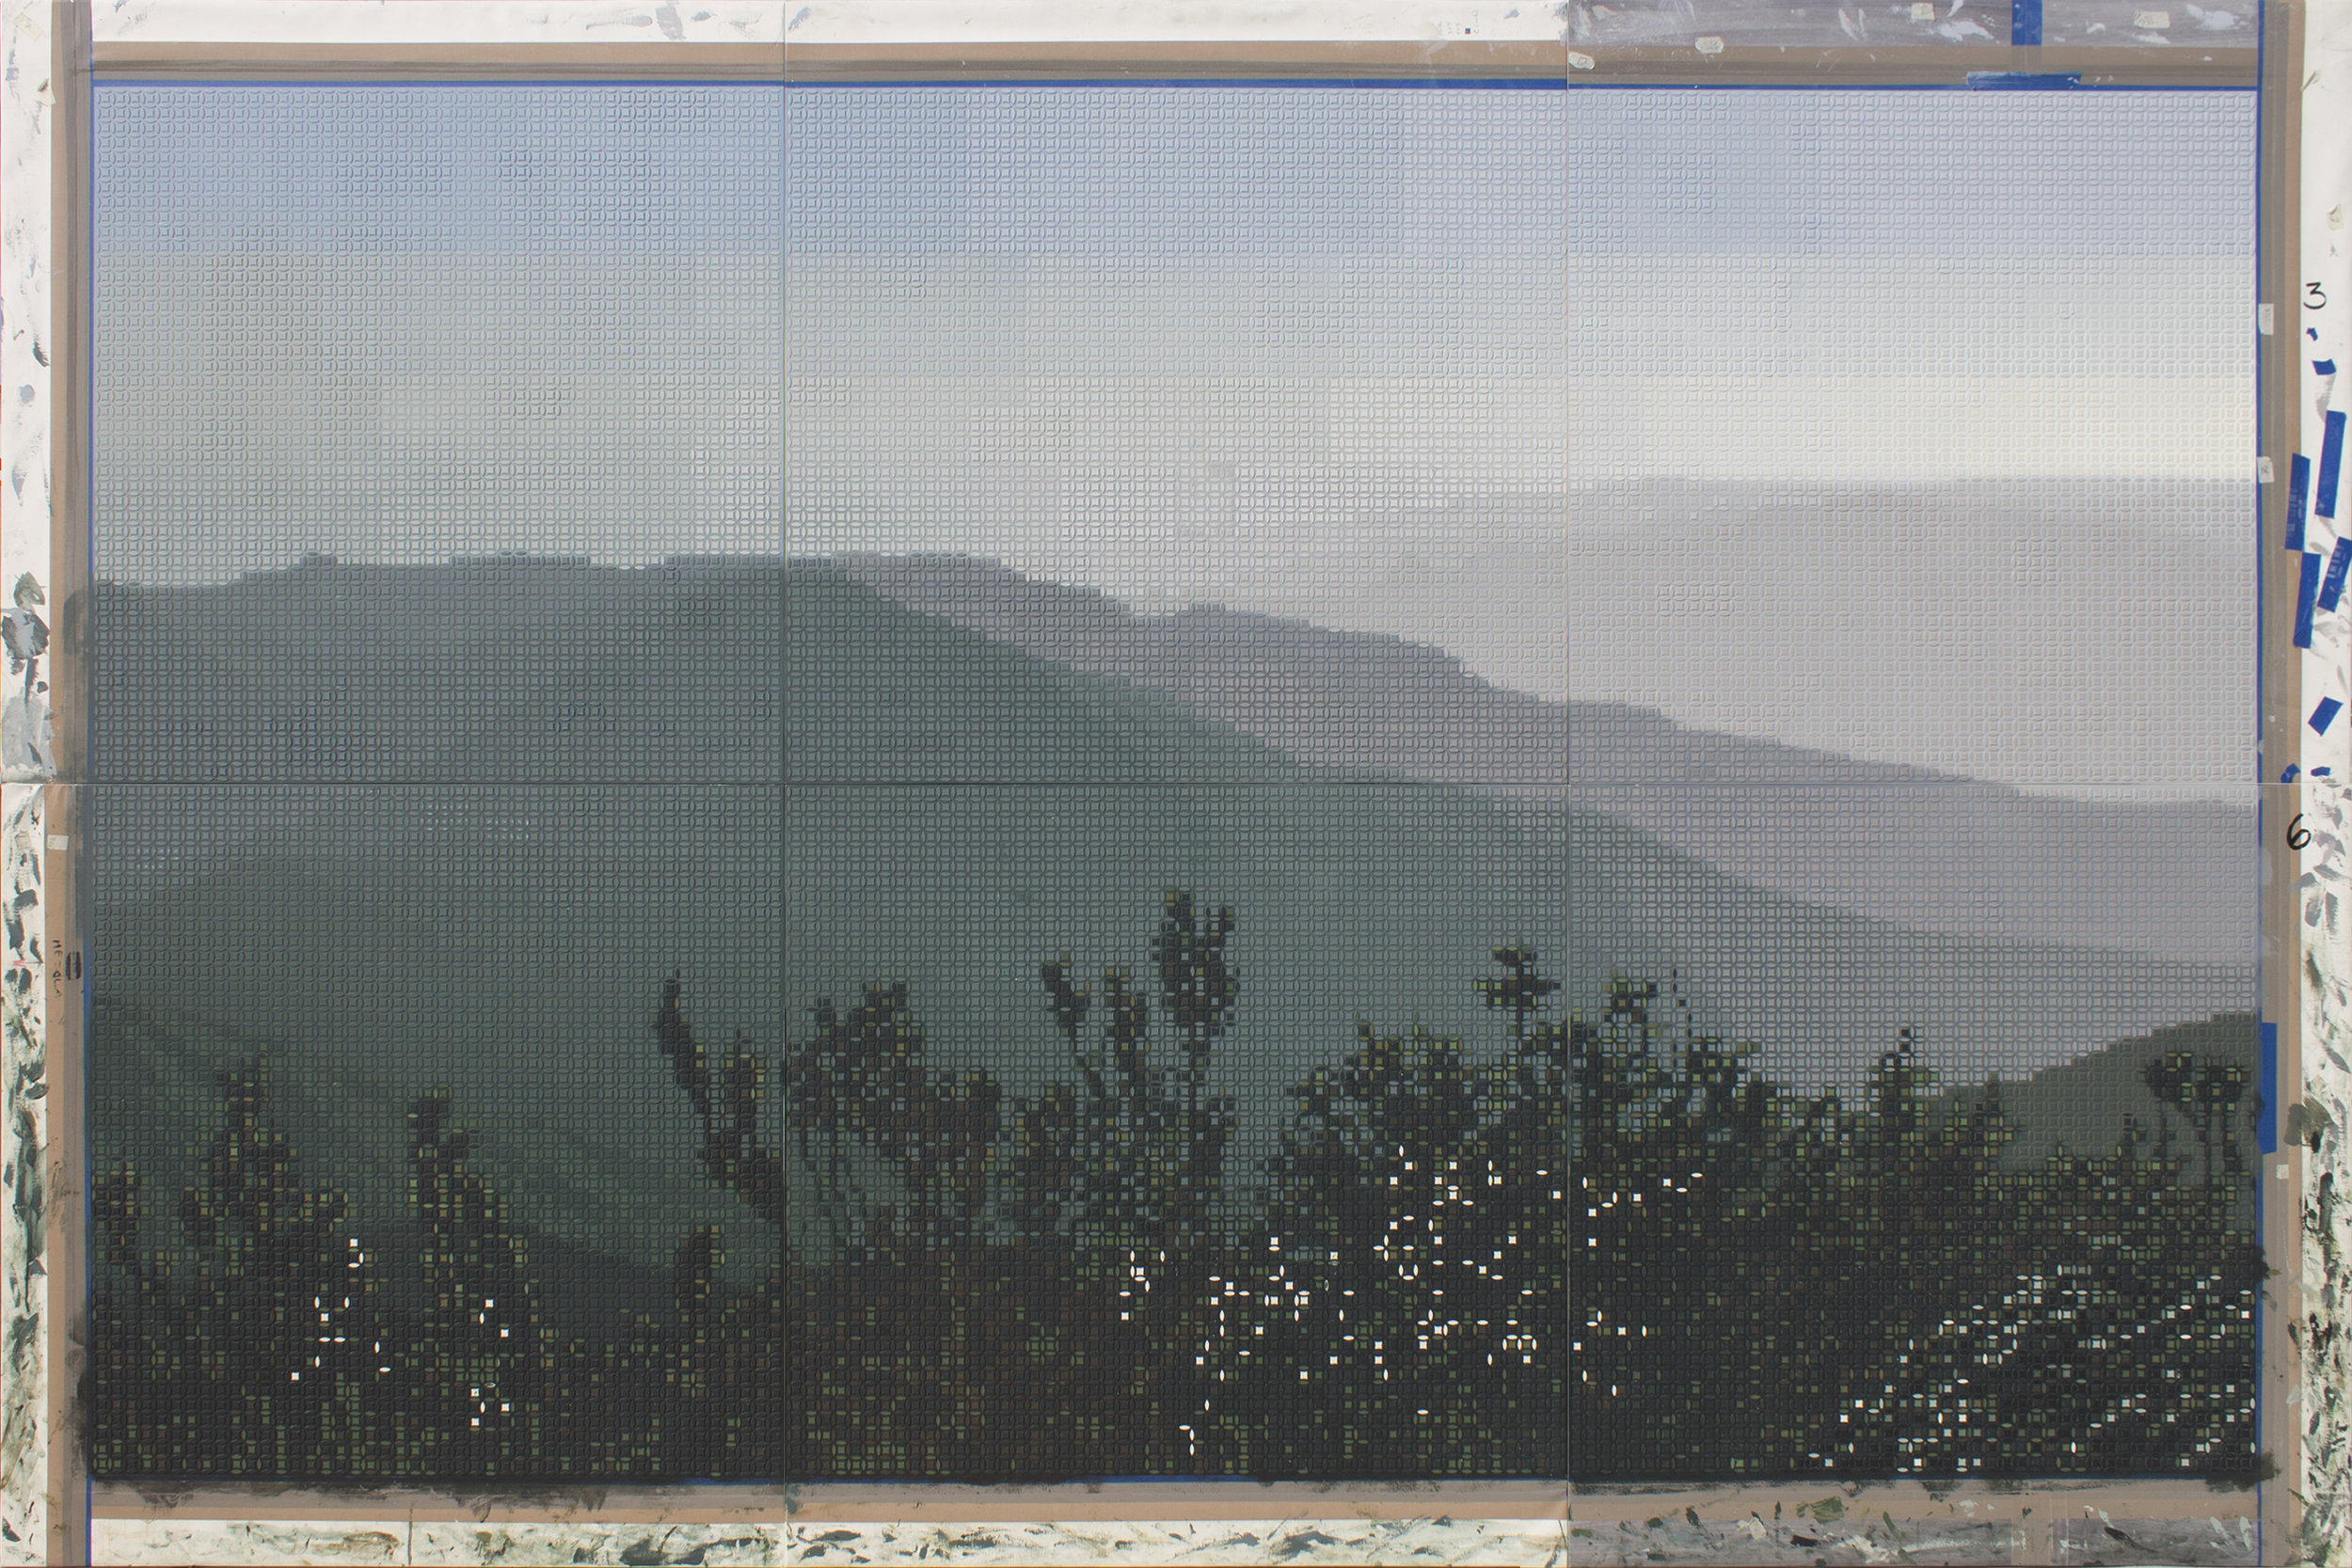 Roger Toledo,  Amanecer en el Pico Turquino  ( Sunrise at Pico Turquino ), 2018, Acrylic on canvas, 78 3/4 x 118 inches (200 x 300 cm); Comprised by six panels of 39 3/8 x 39 3/8 inches (100 x 100 cm).